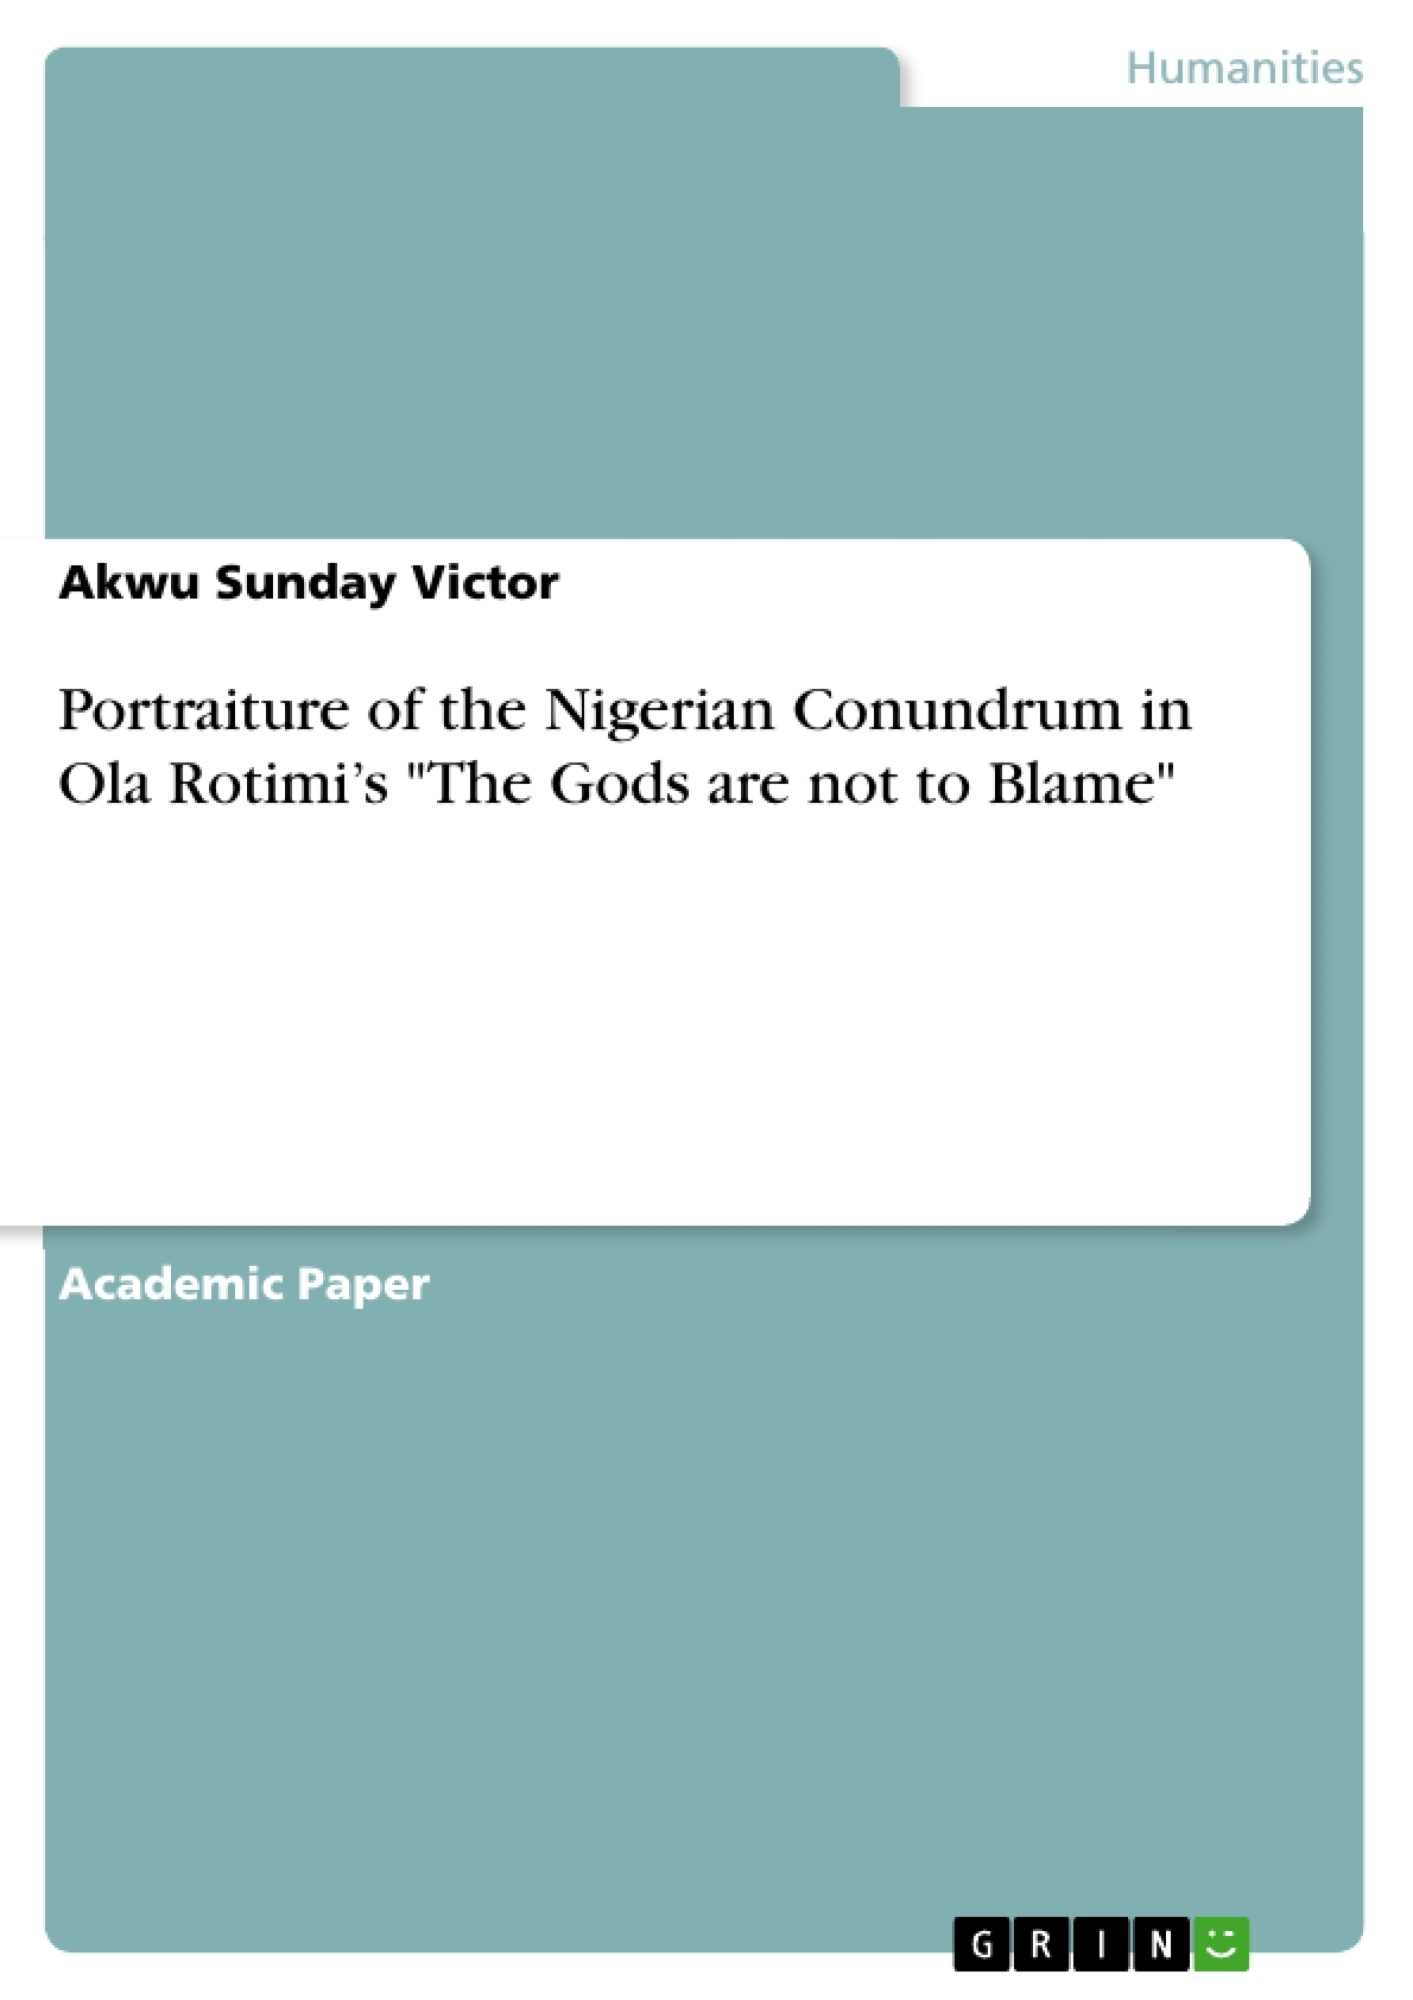 """Title: Portraiture of the Nigerian Conundrum in Ola Rotimi's """"The Gods are not to Blame"""""""